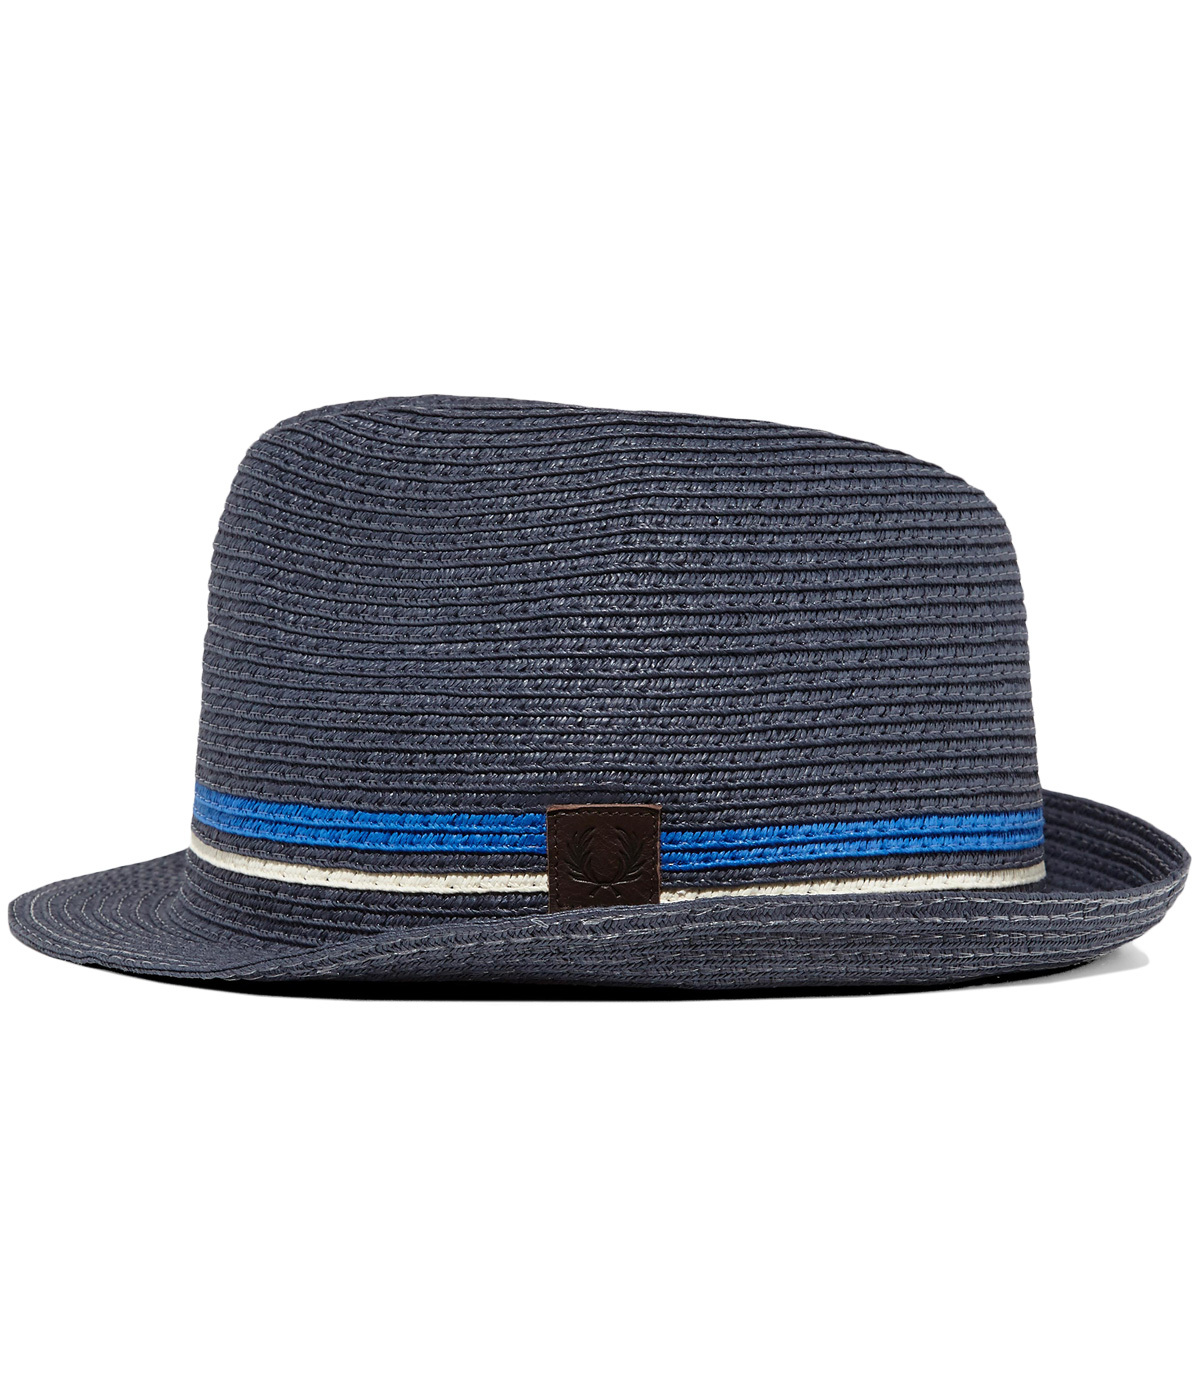 FRED PERRY Retro Mod Indie Straw Trilby